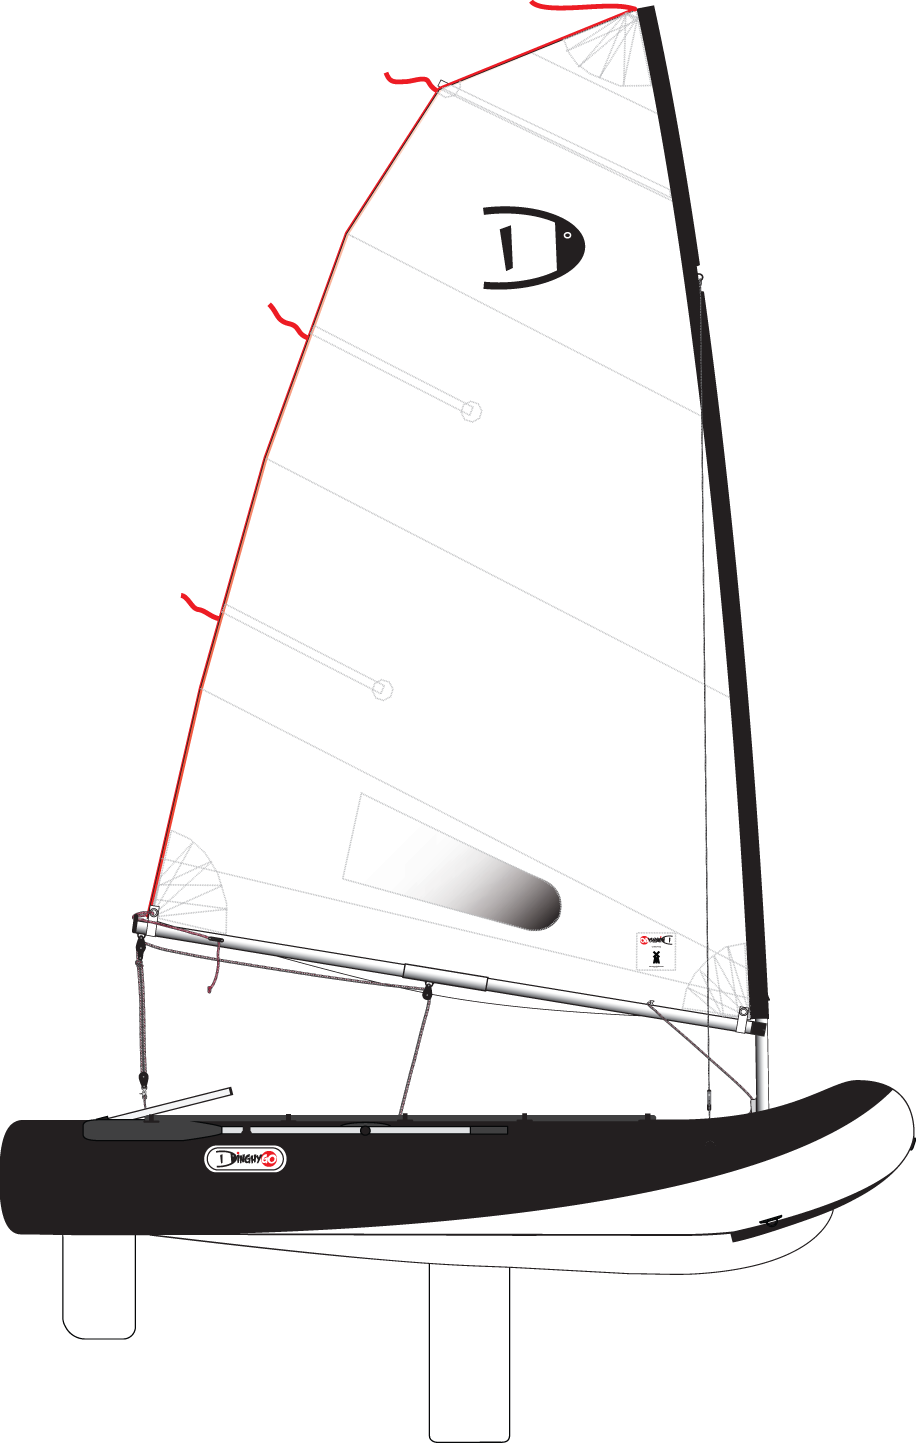 DinghyGo_Orca_side_view